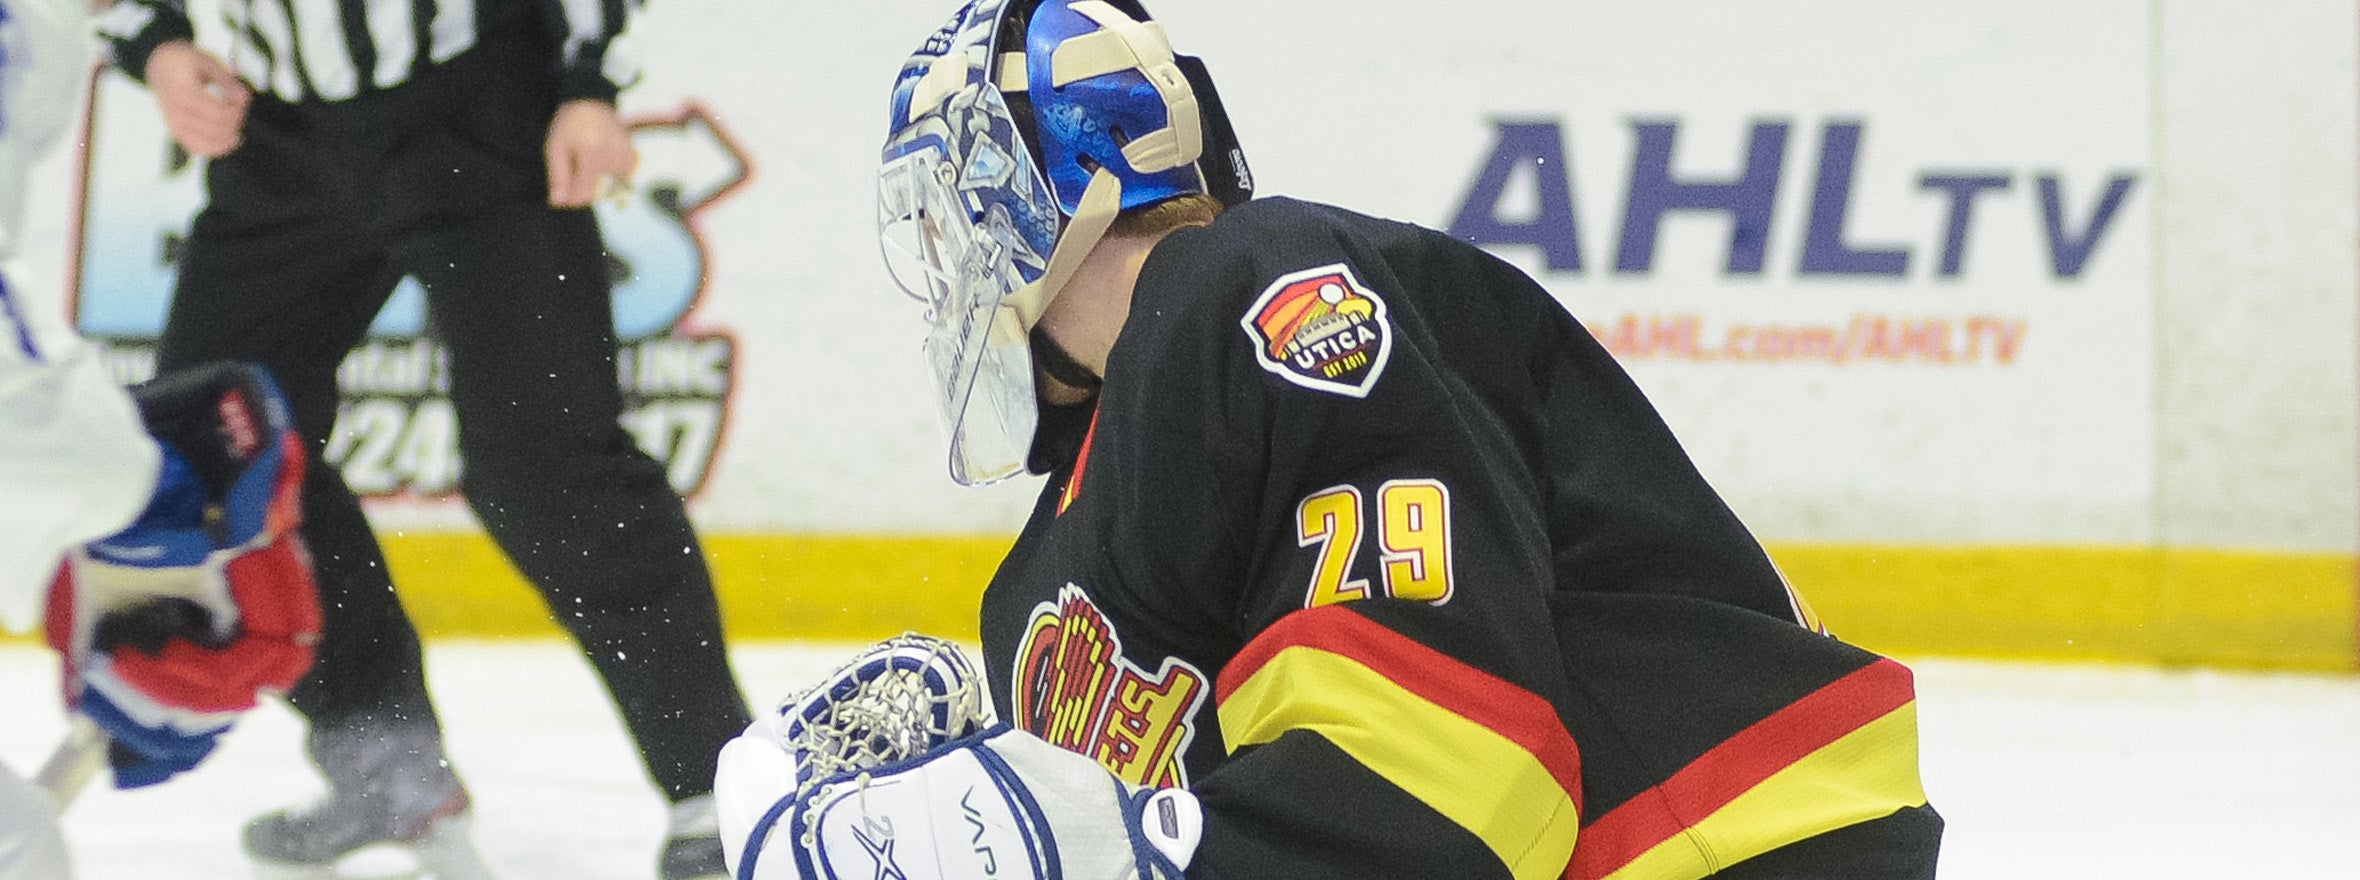 CANUCKS SIGN GOALTENDER JAKE KIELLY TO A ONE-YEAR, TWO WAY CONTRACT